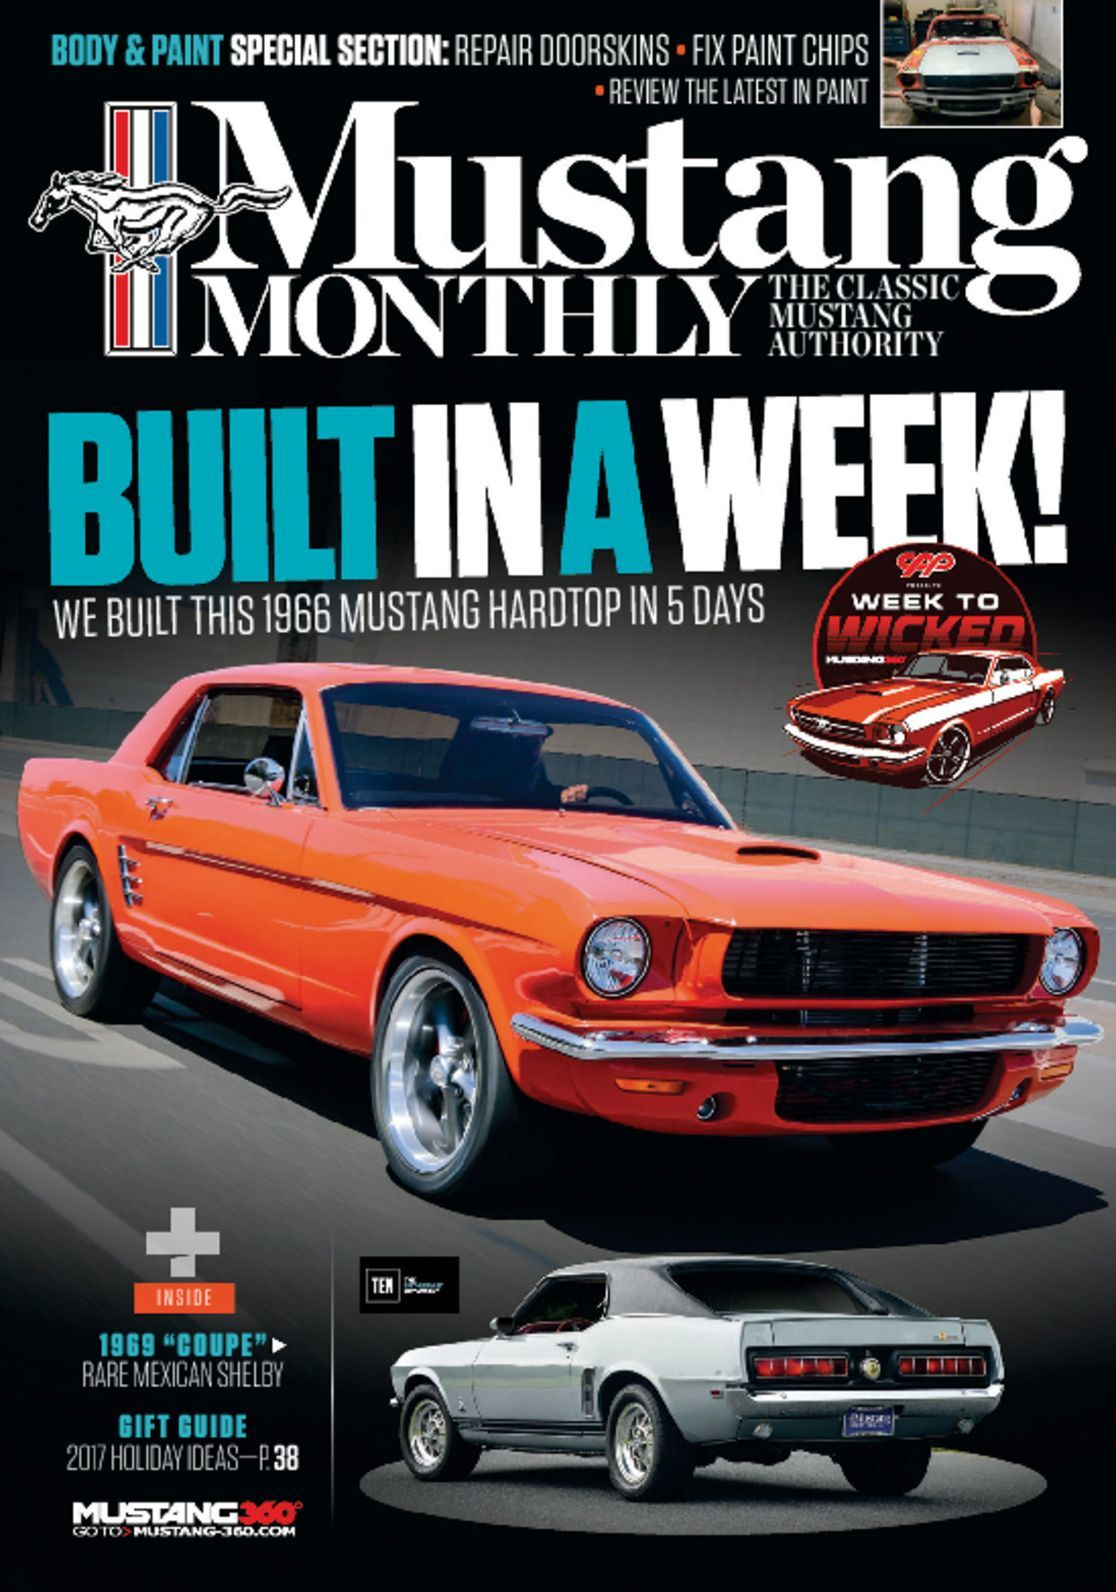 88 Mustang 5.0 >> Mustang Monthly Magazine | Mustang News - DiscountMags.com